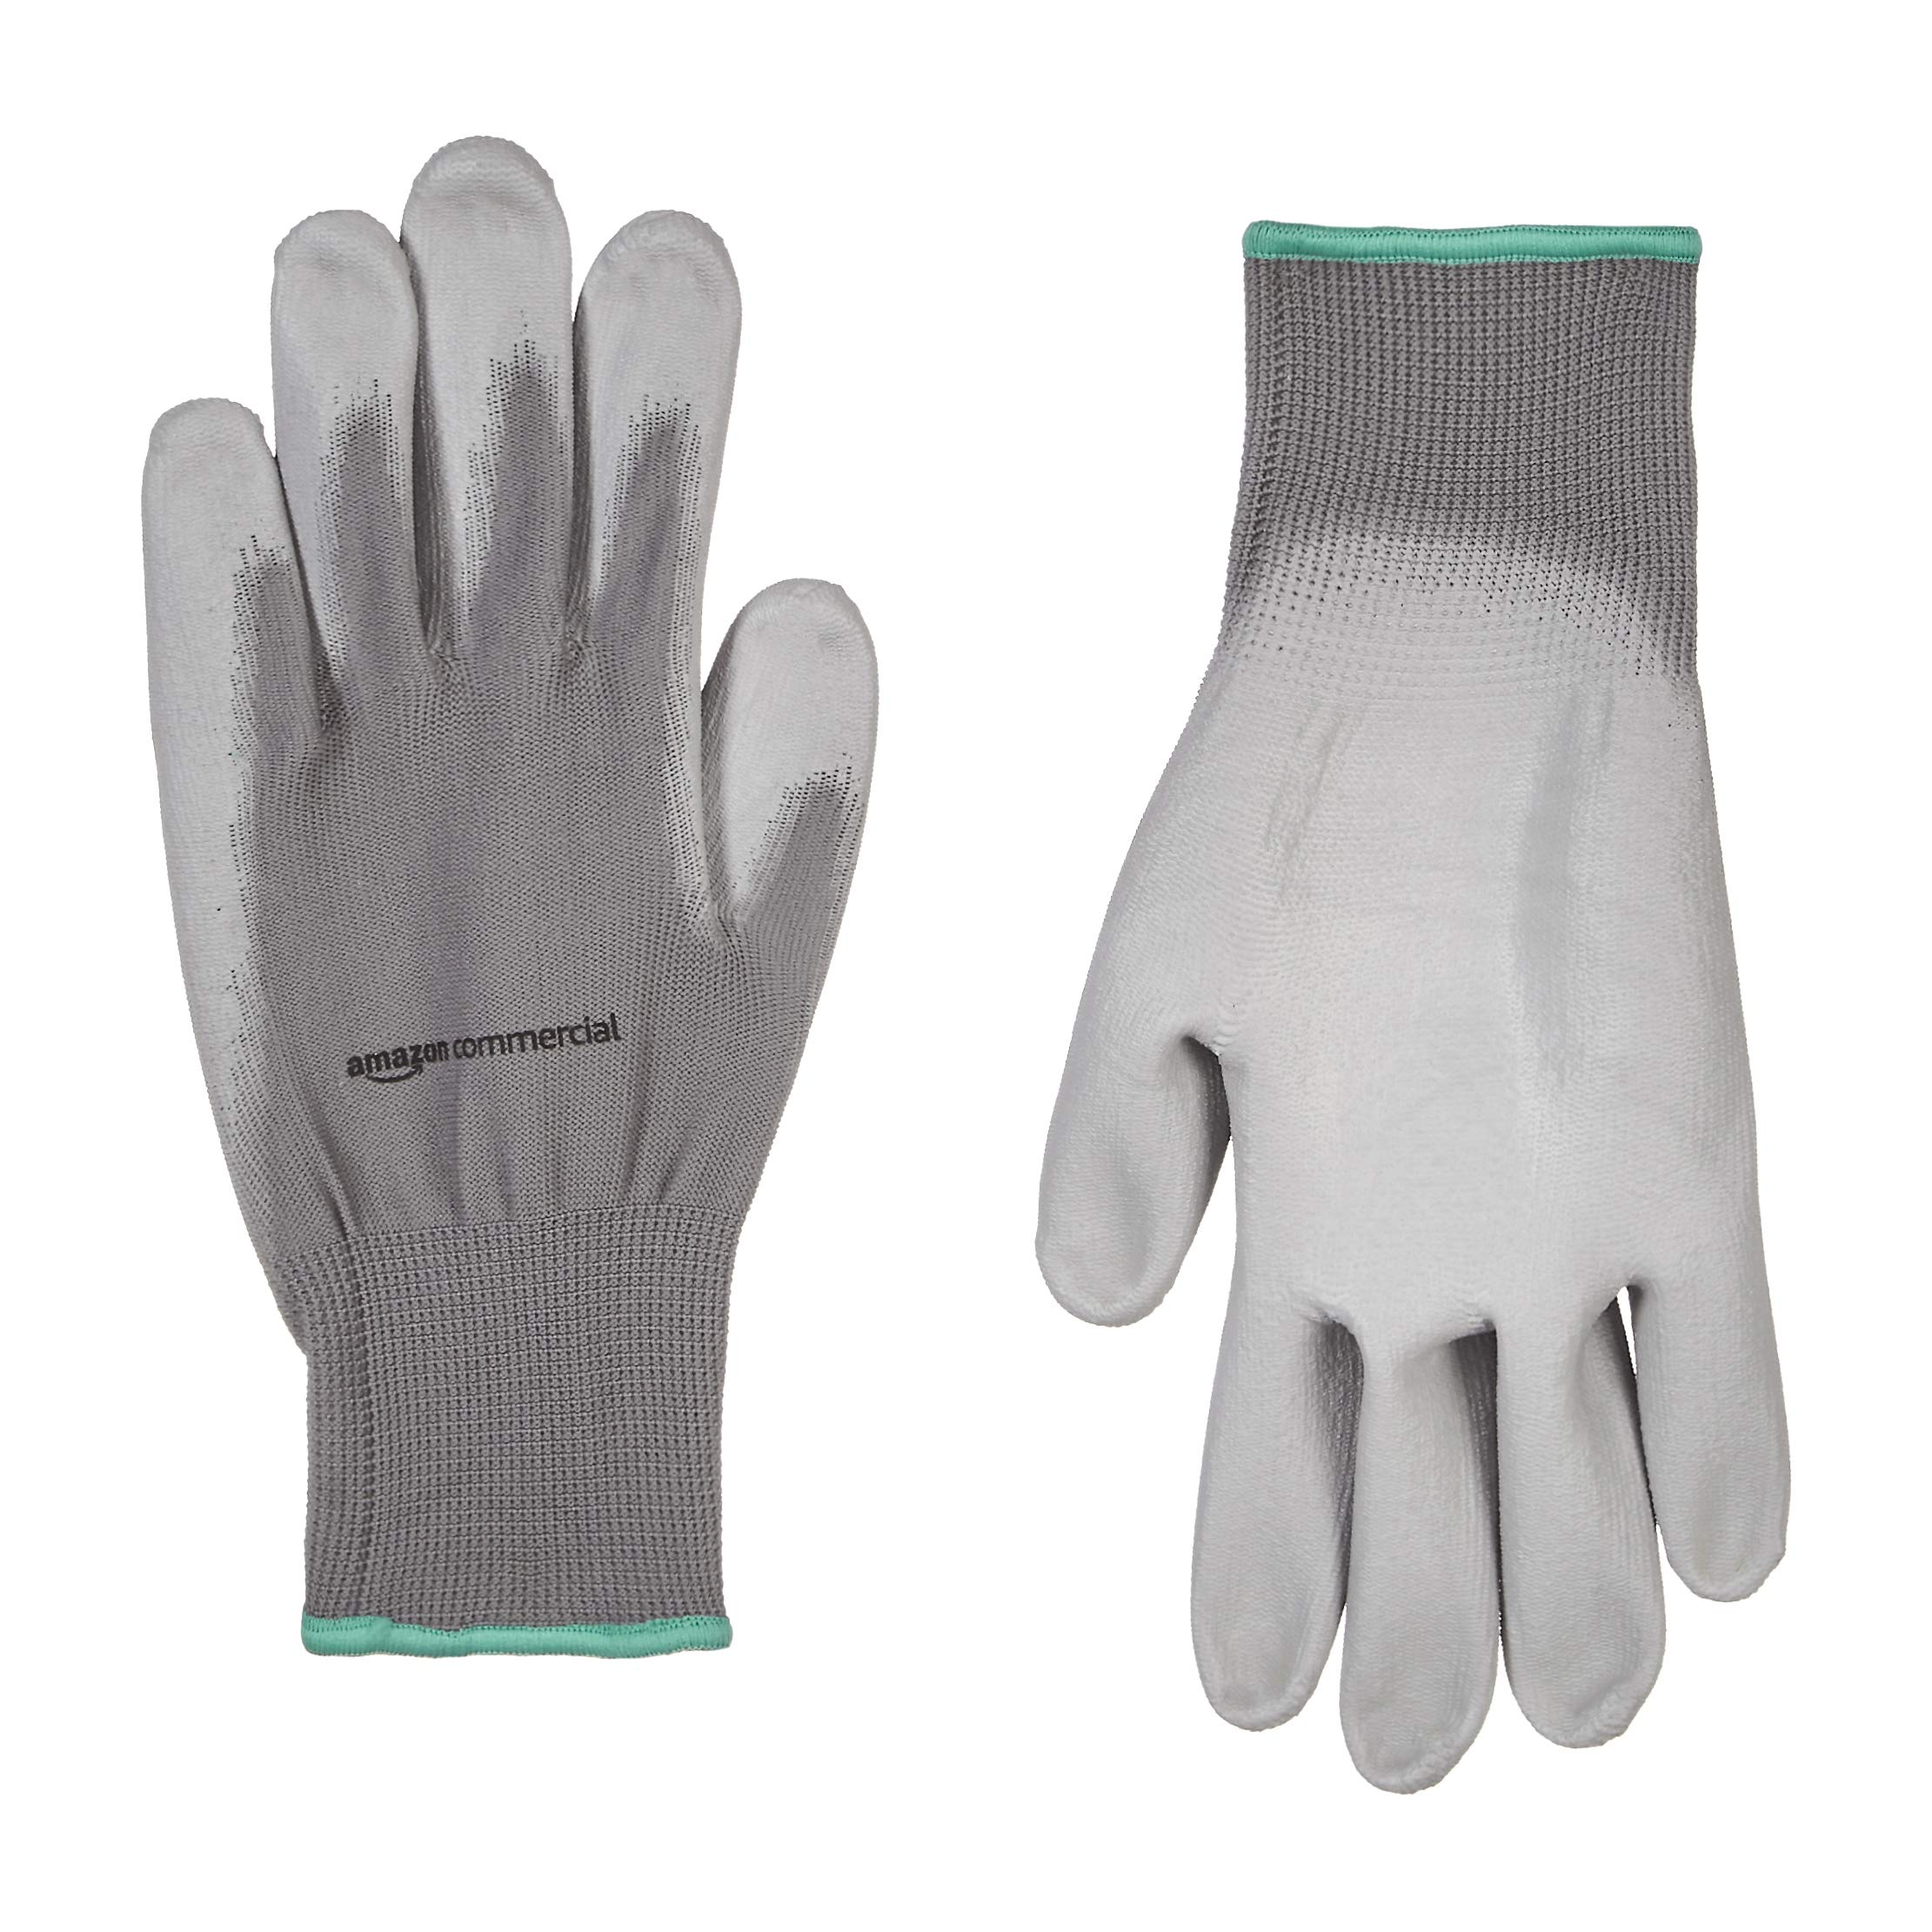 AmazonCommercial 13G Polyester & PU Coated Gloves (Grey), Size M, 12 Pairs